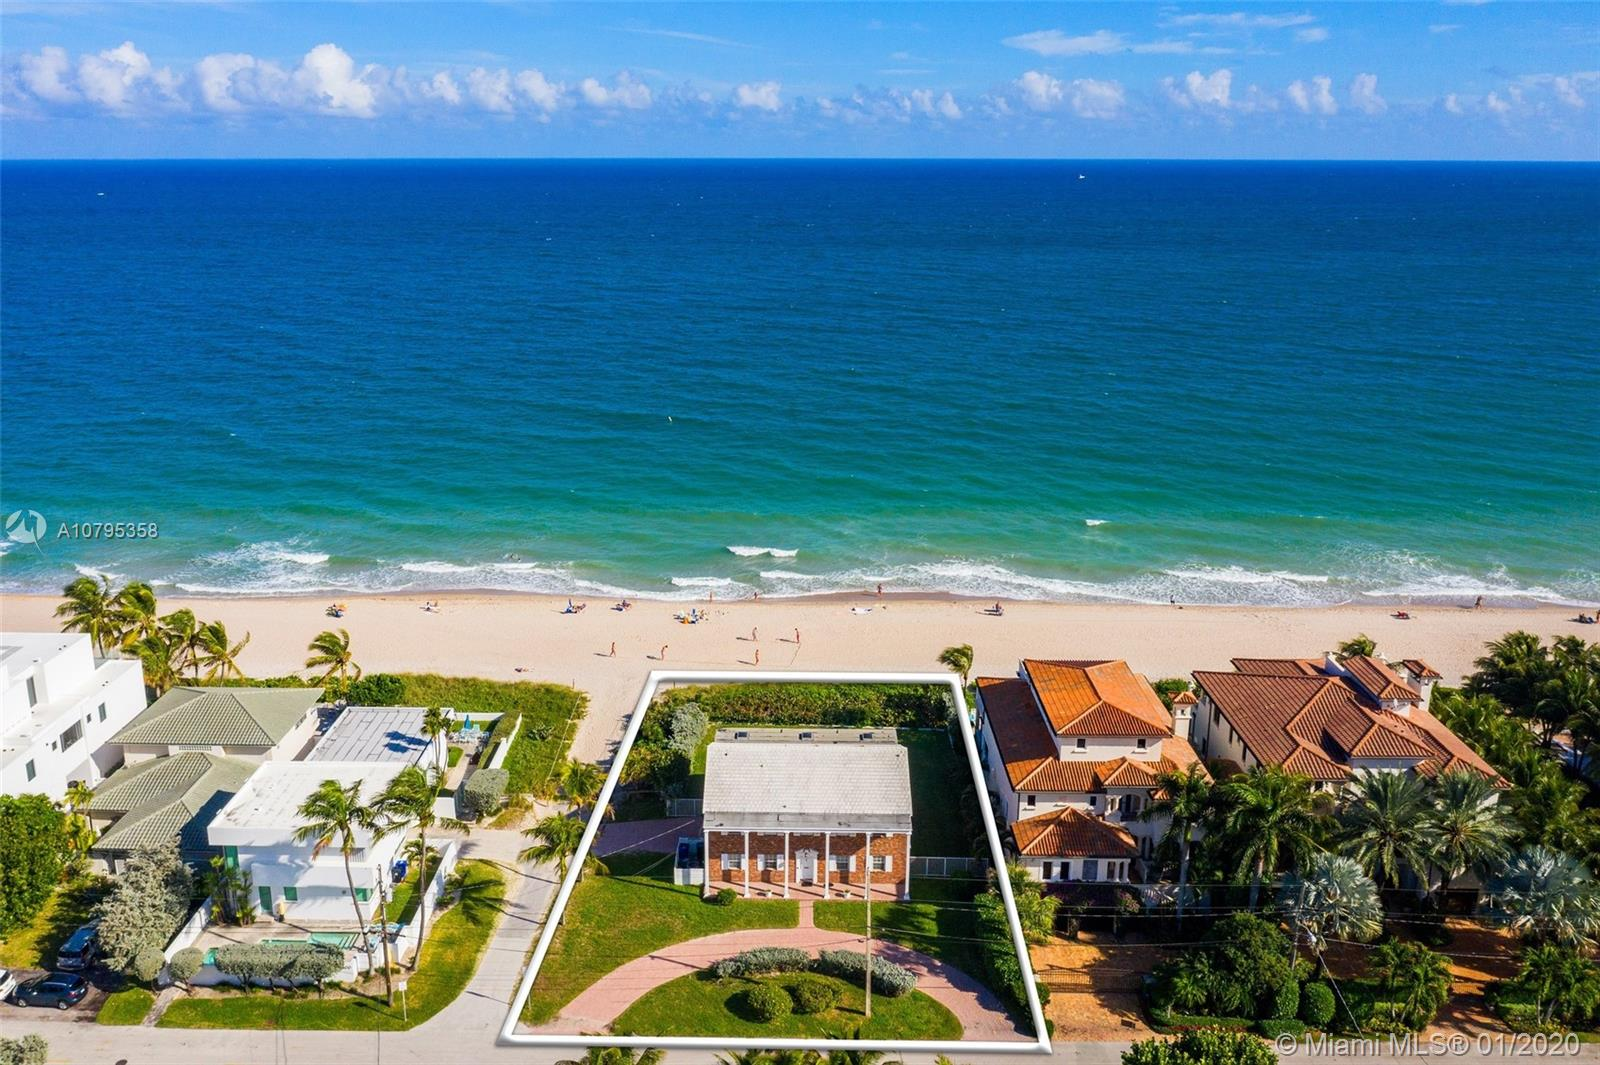 Direct Oceanfront oversized lot with 80 feet of prime water frontage! The Atlantic Ocean at your doorstep. 11,089 square feet of land. Rarely available 1 of 52 oceanfront homes on North Atlantic Blvd. Excellent location in a private neighborhood, build your dream home!